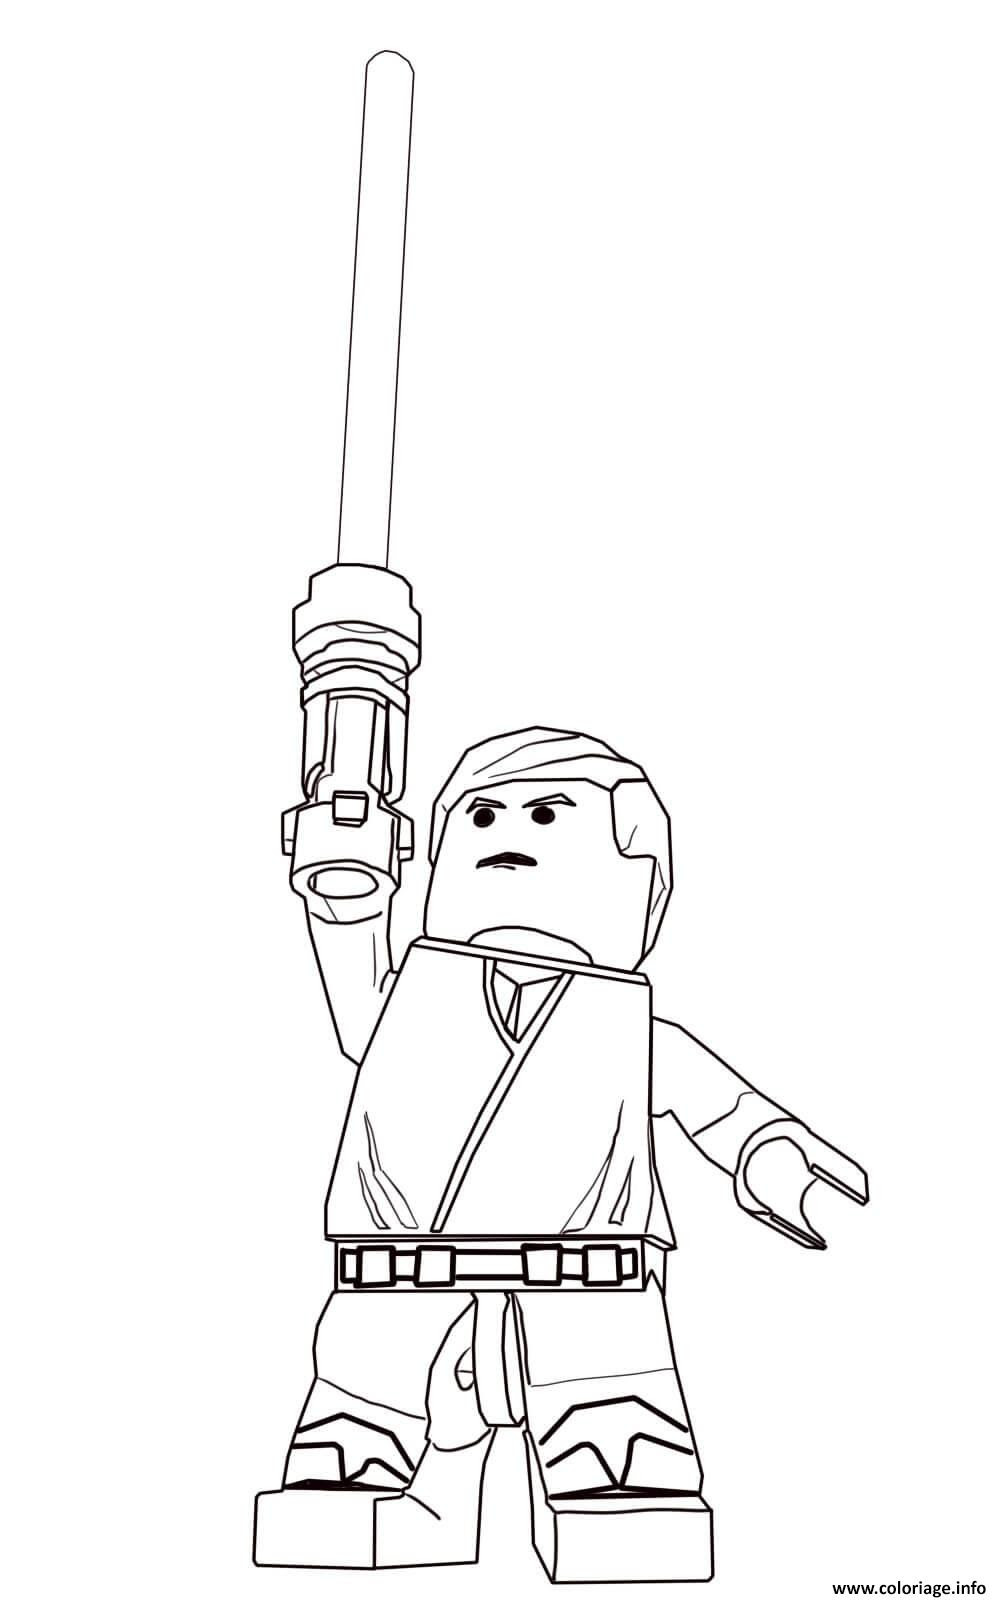 Coloriage Lego Star Wars Luke Skywalker Jecoloriecom